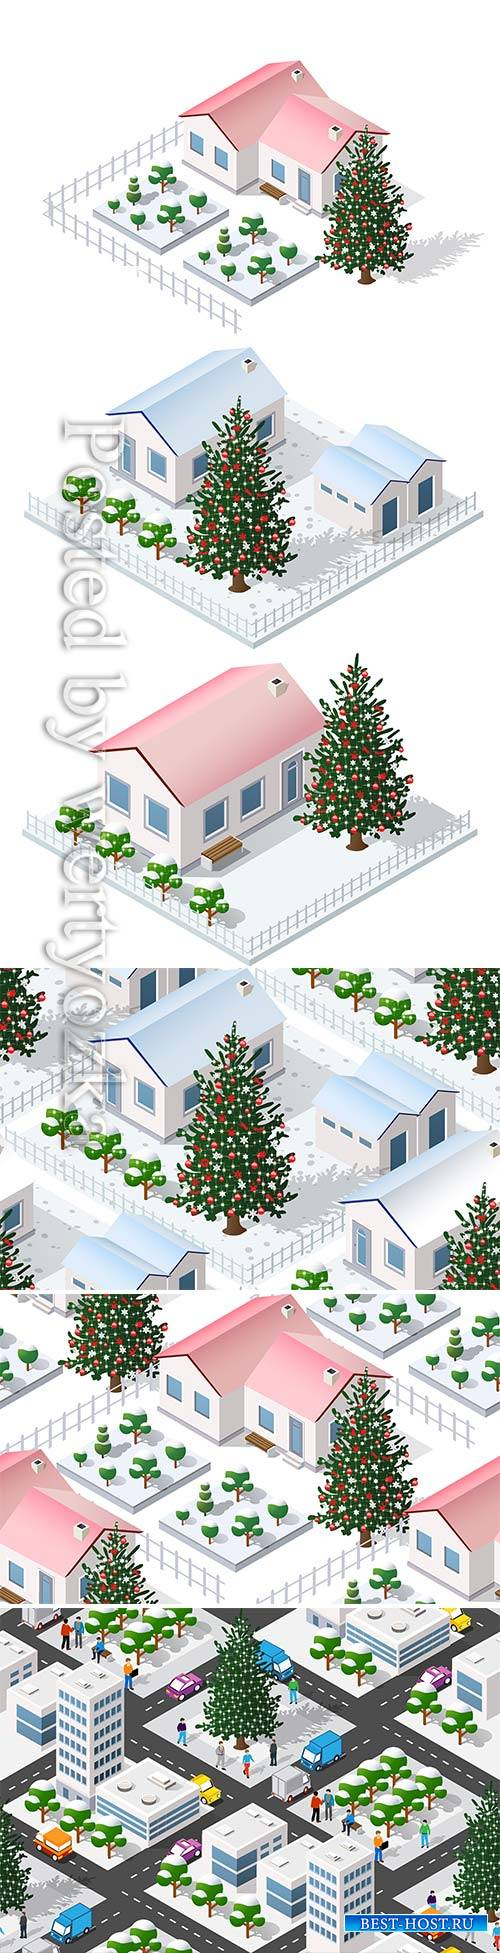 Christmas winter city graphic conceptual holiday illustration